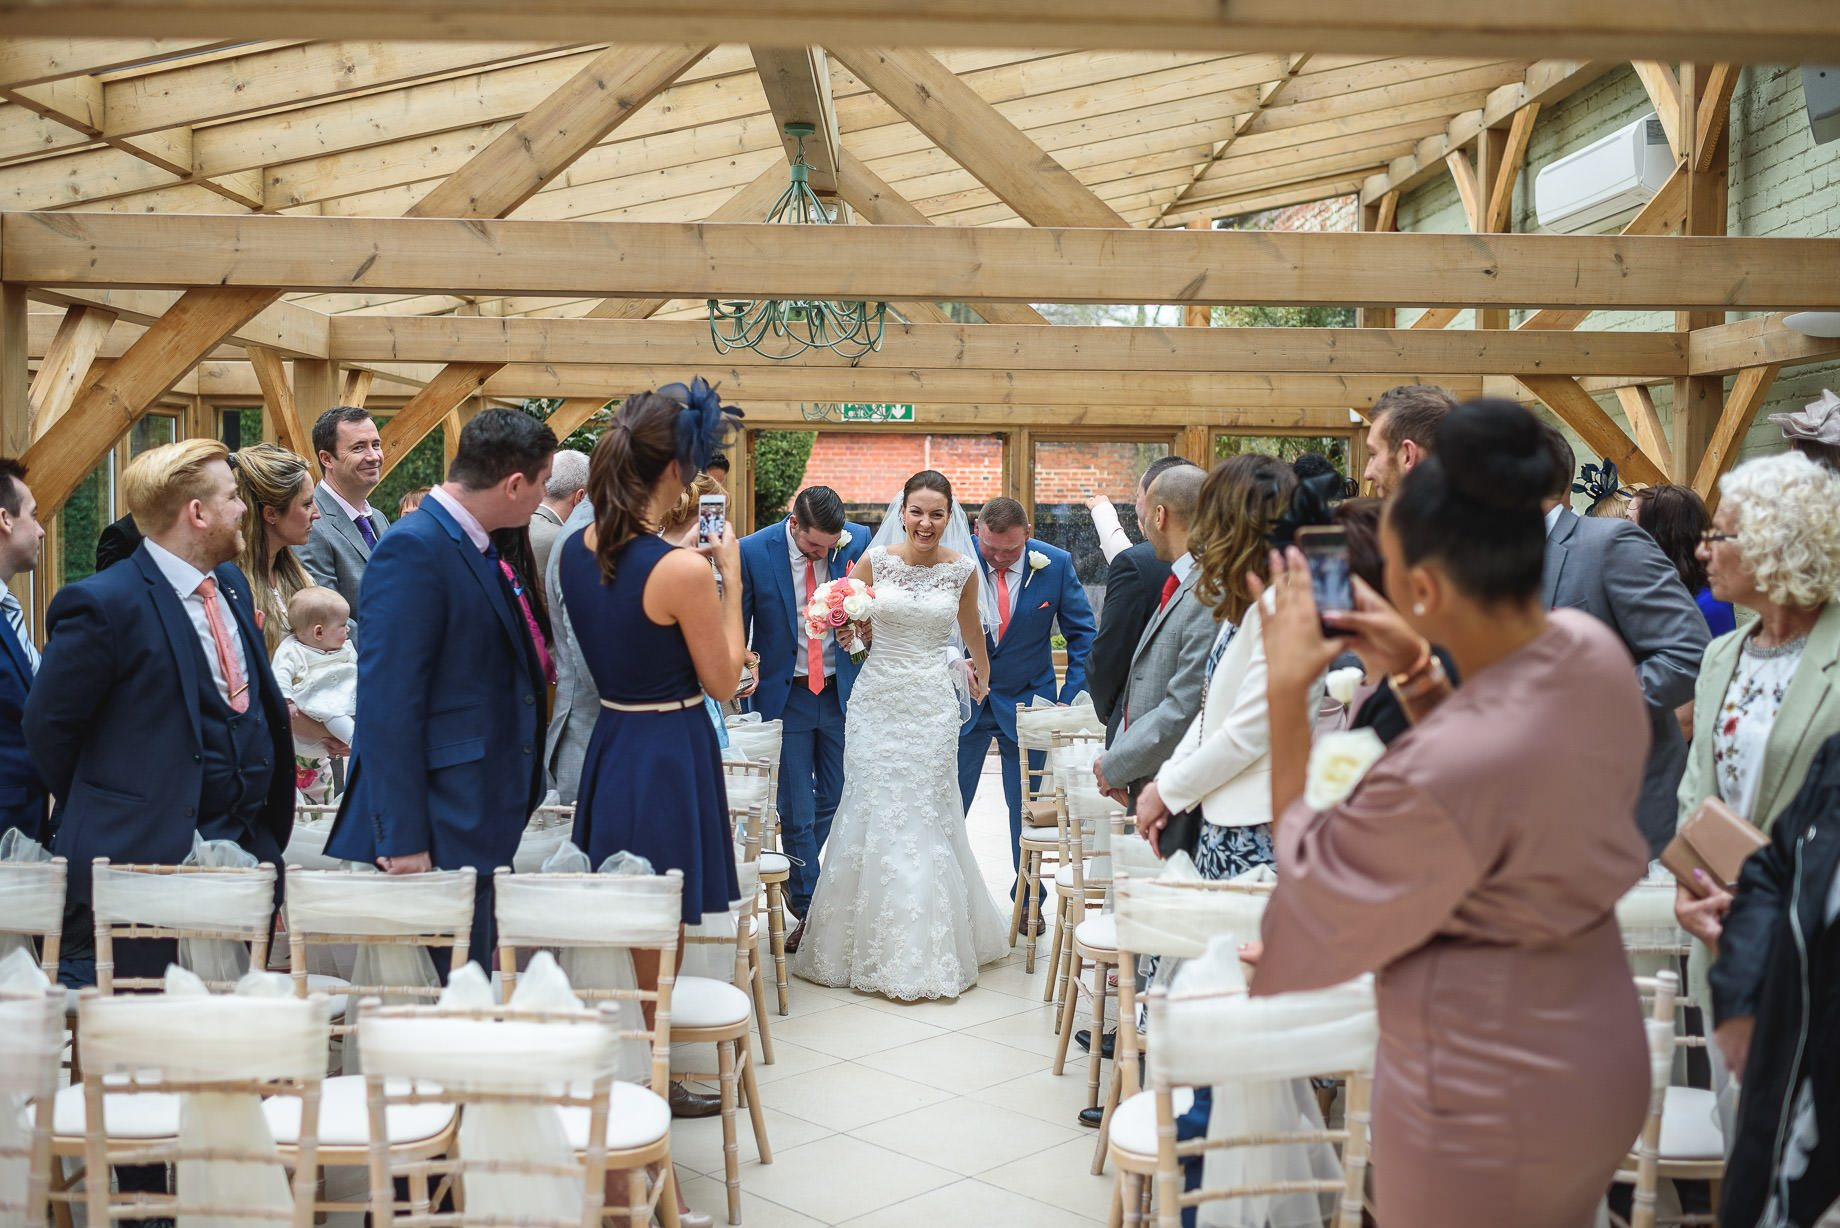 Best wedding photography by Guy Collier - Sheri and Chris (51 of 121)